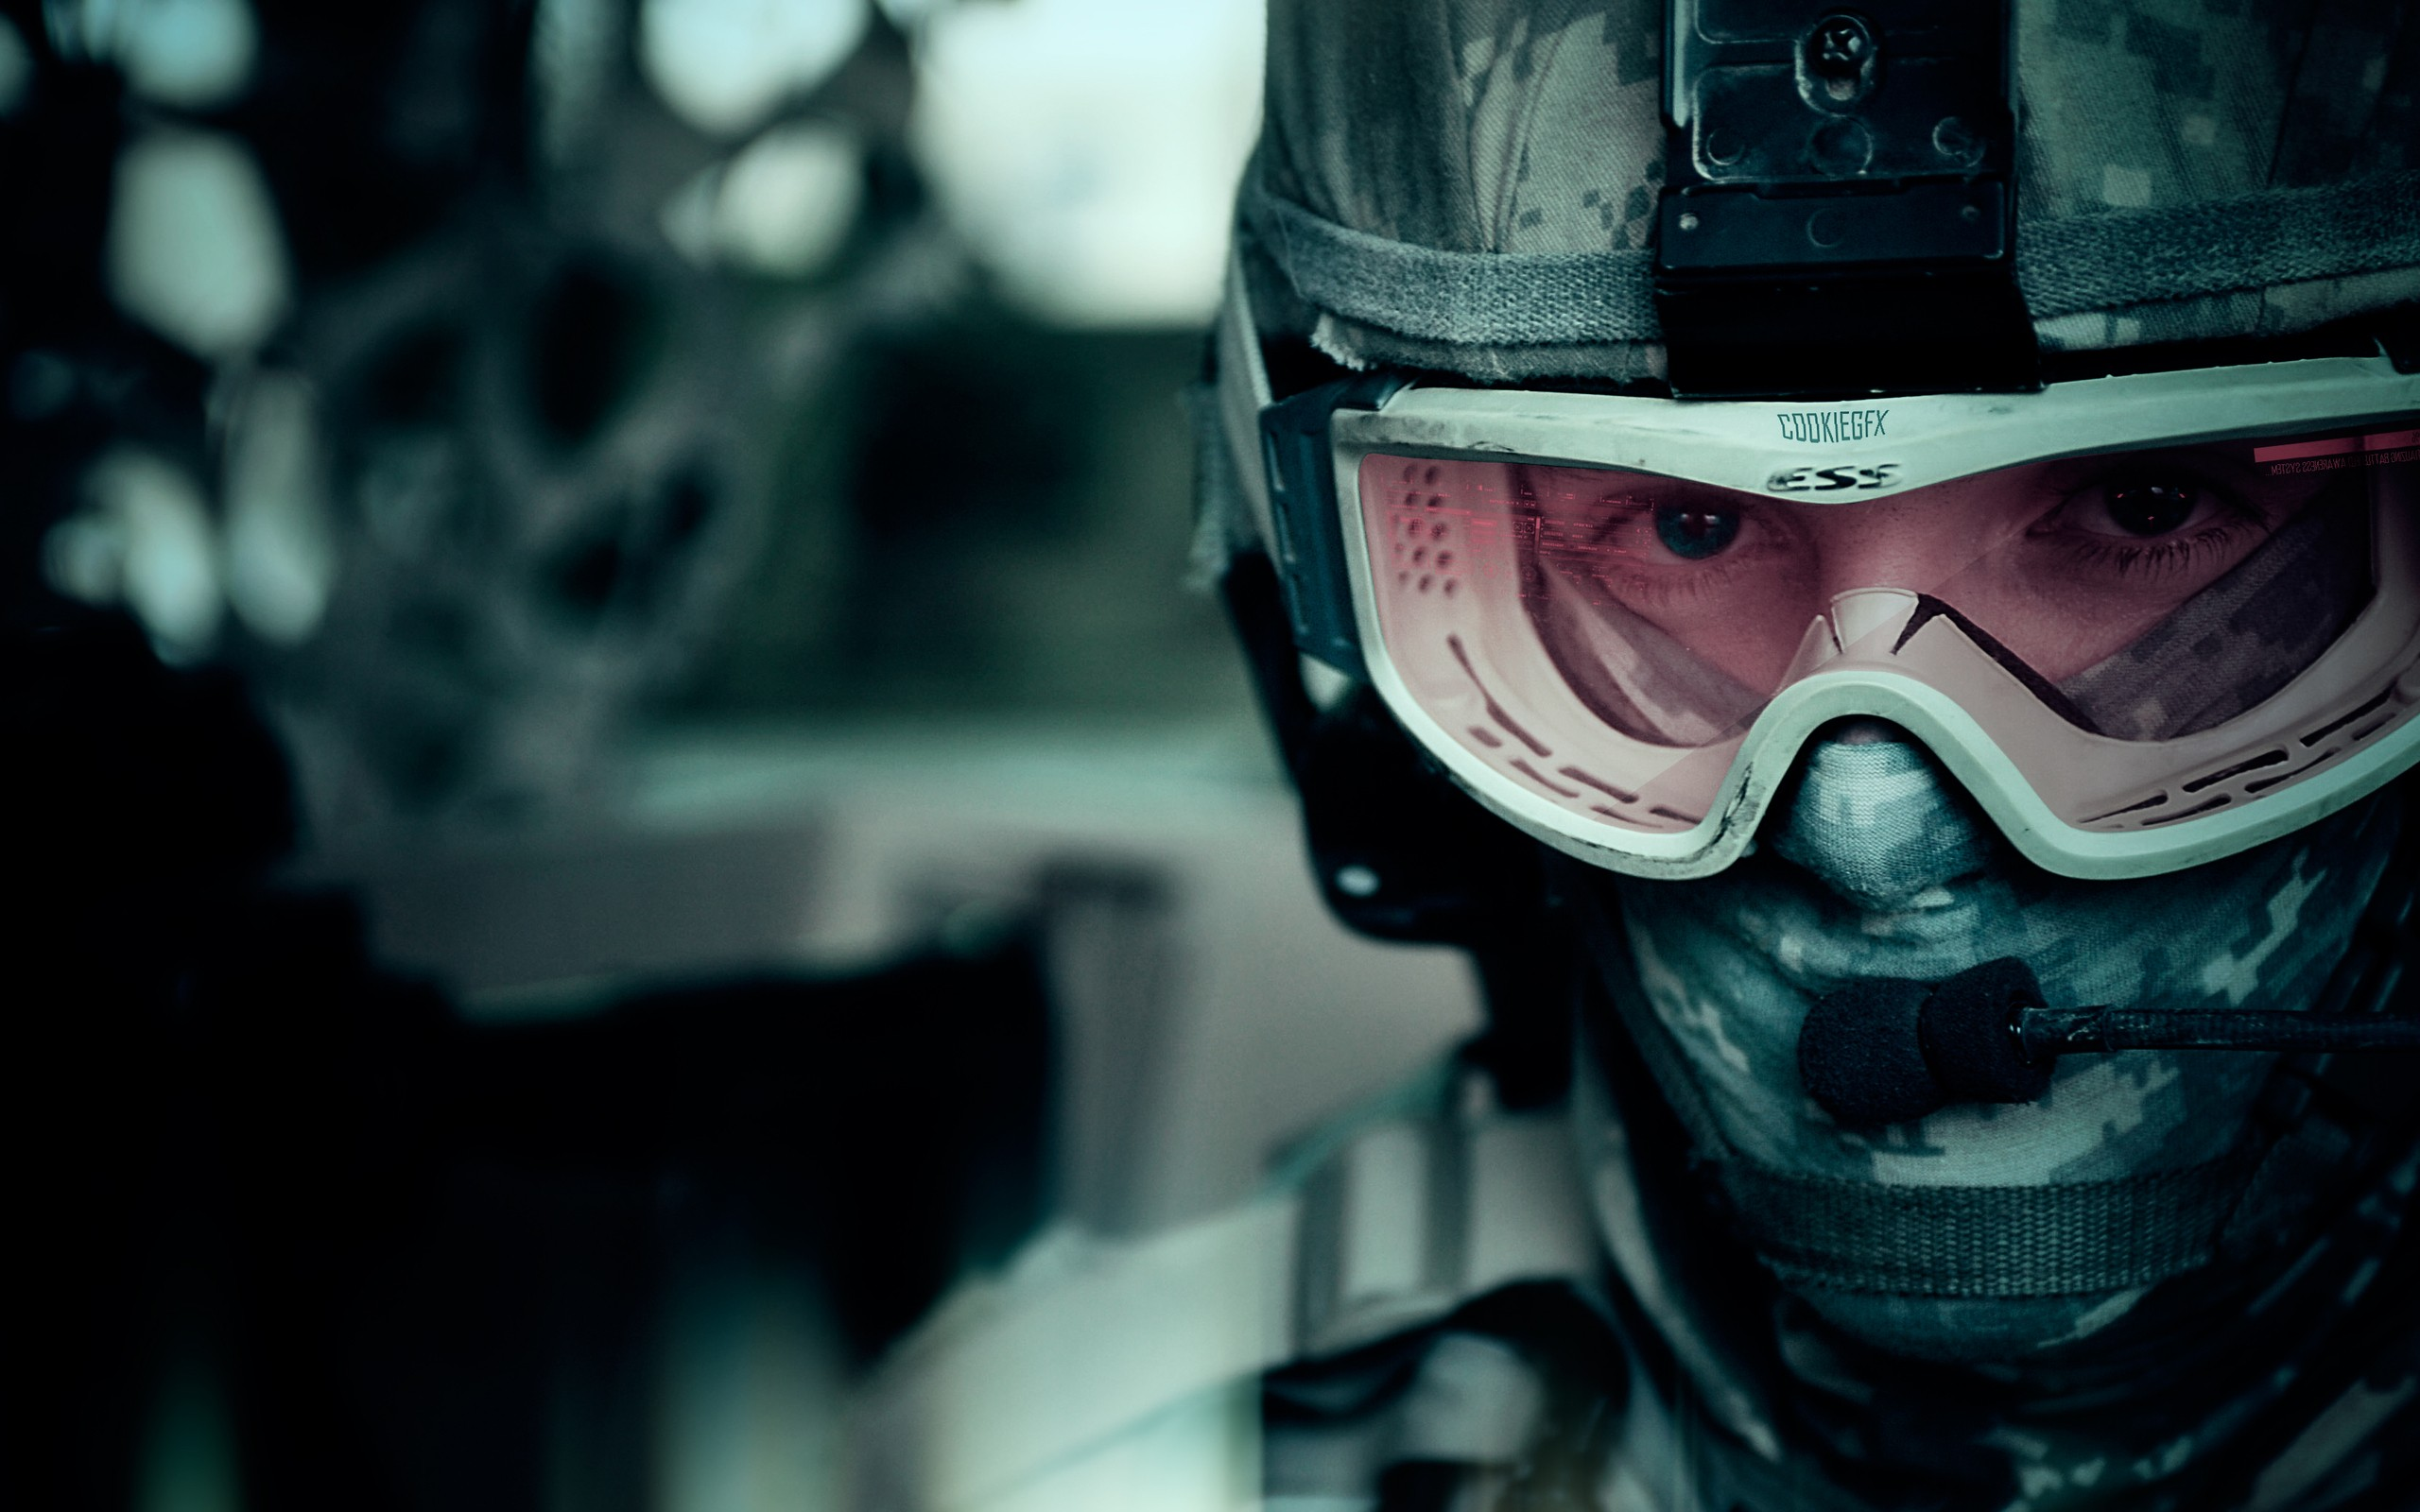 Wallpaper Abyss Explore the Collection Soldiers Military Soldier 2560x1600